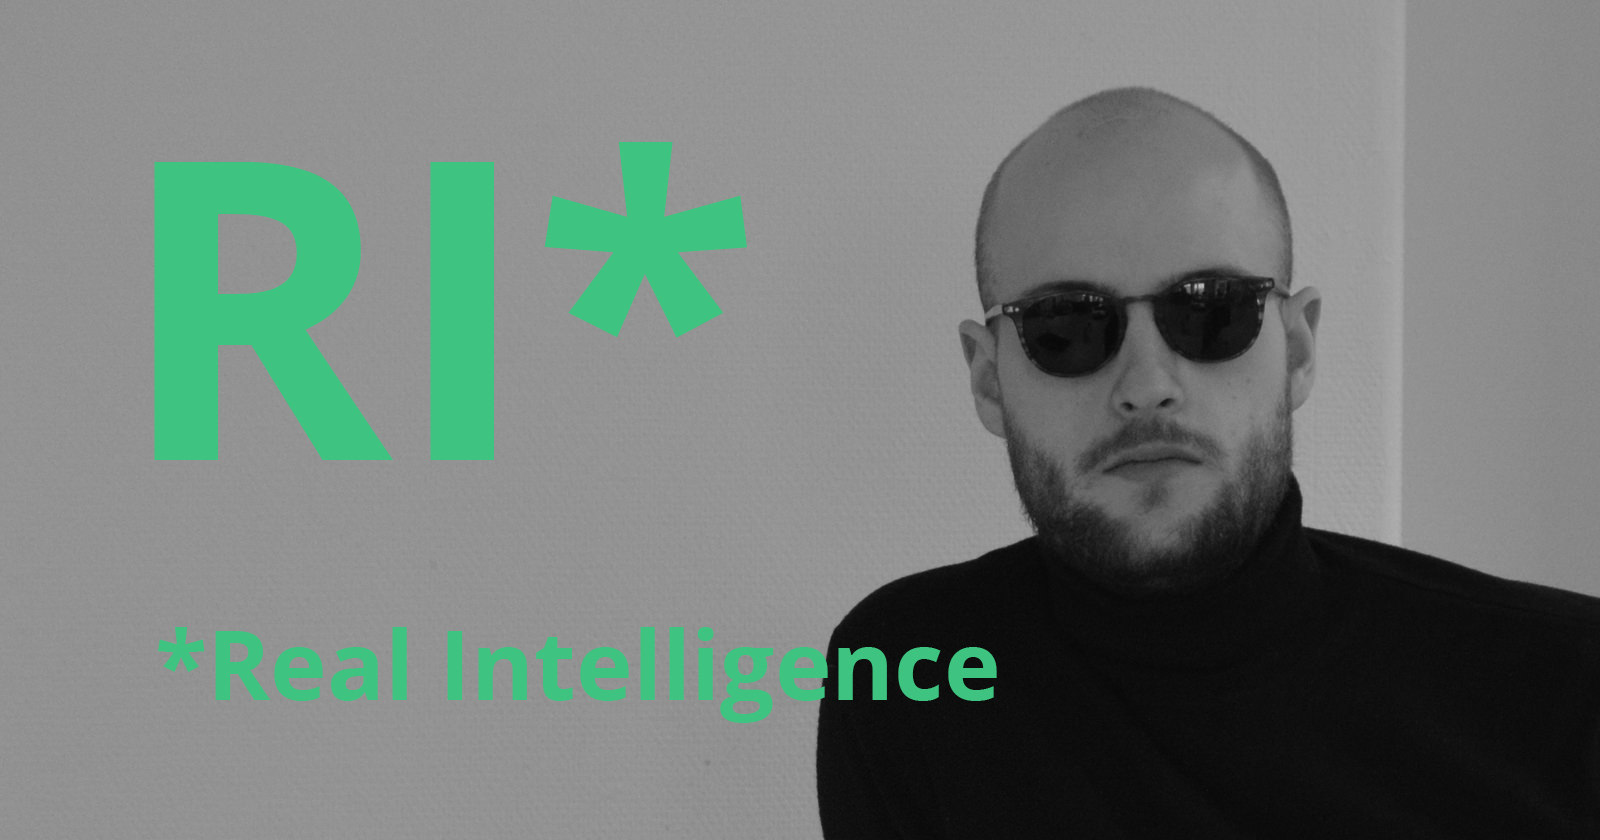 Real intelligence